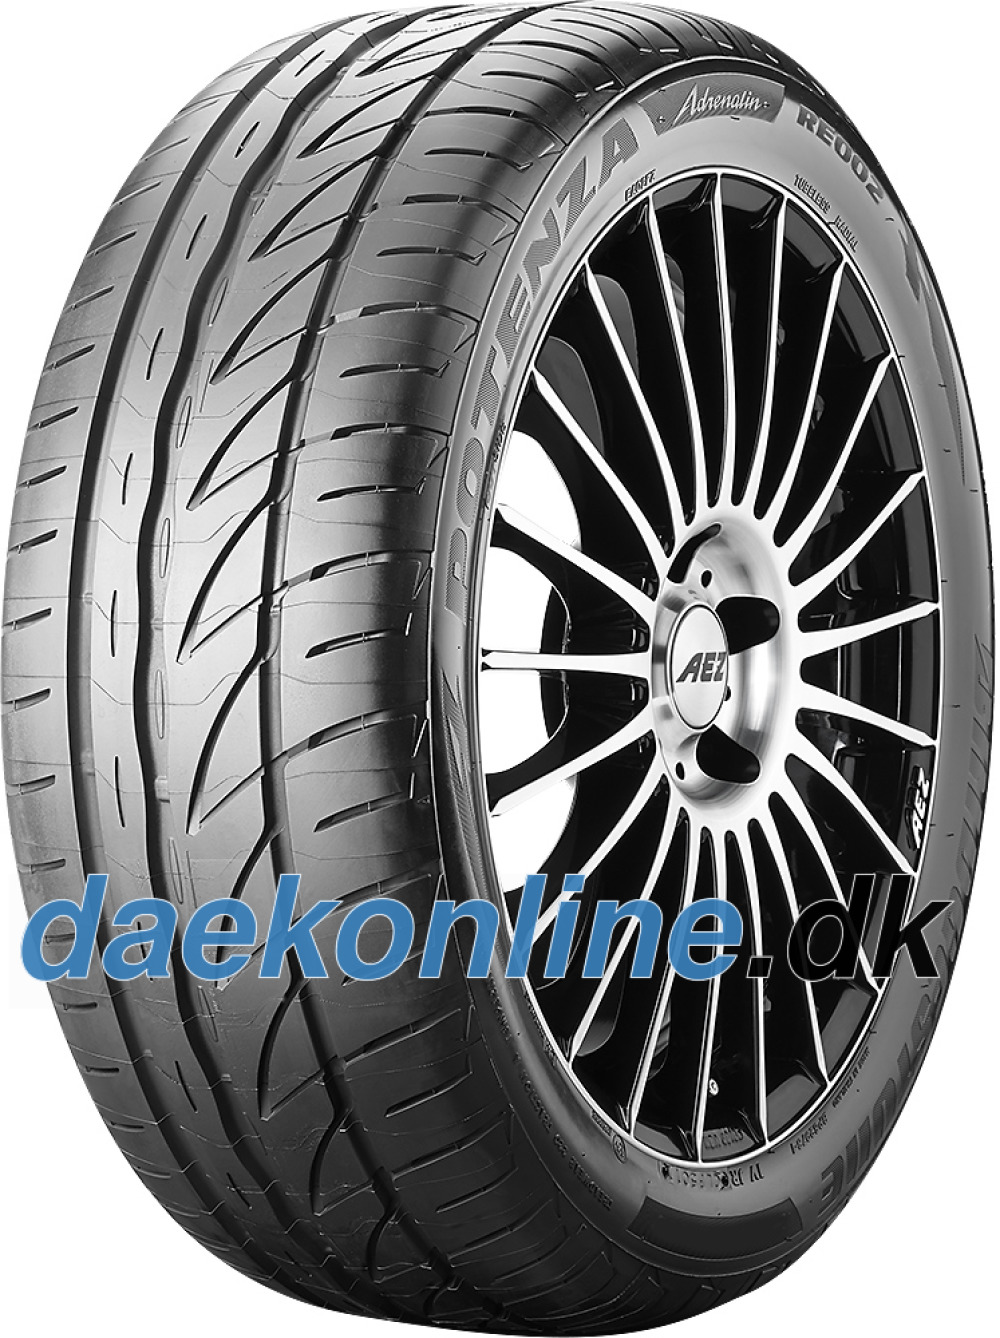 bridgestone-potenza-adrenalin-re002-20555-r16-91w